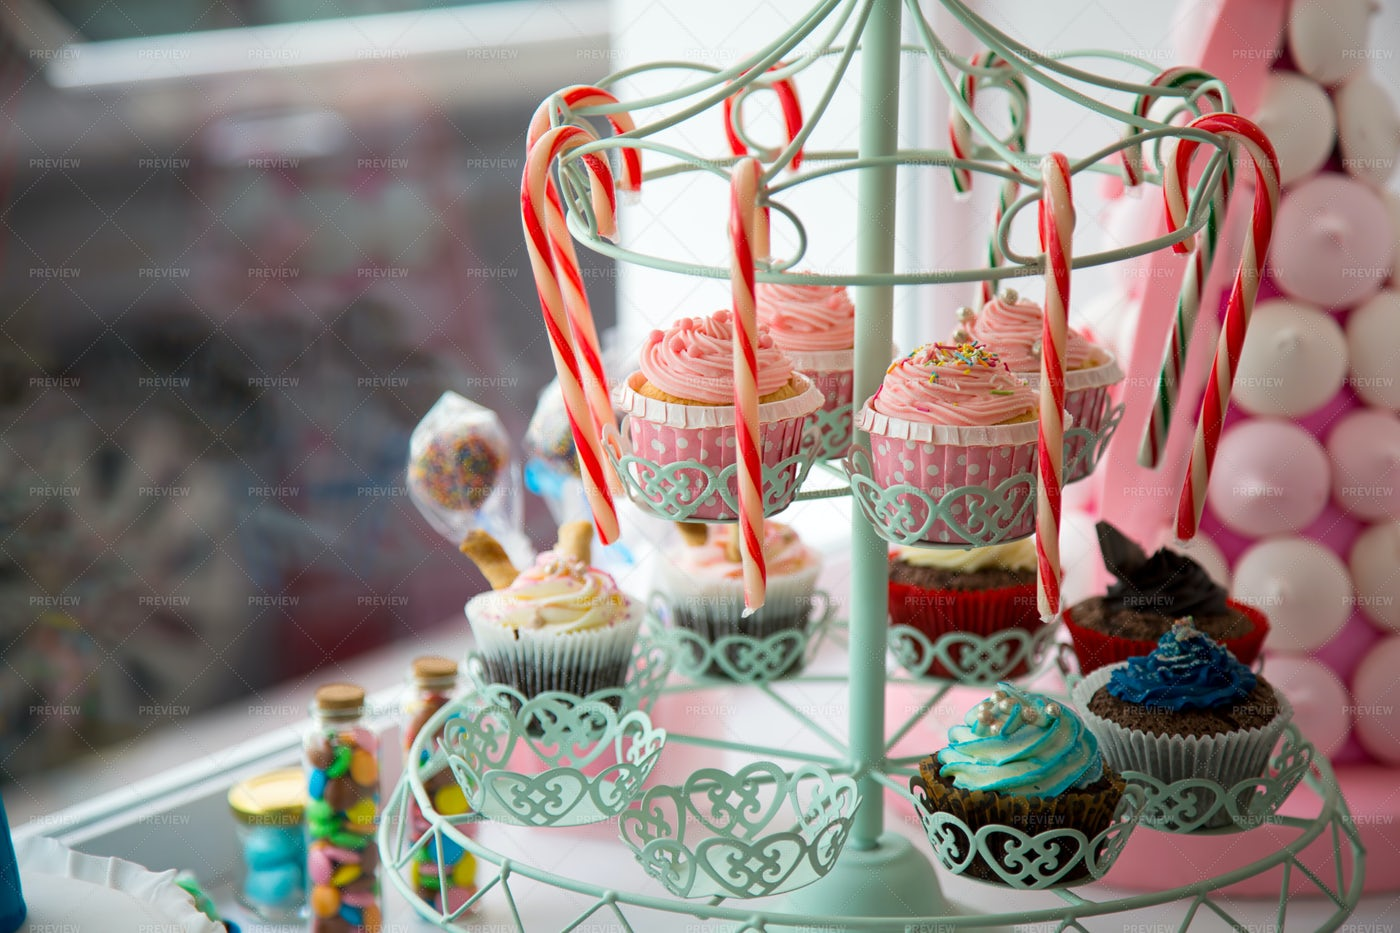 Sweets In Storefront Window: Stock Photos